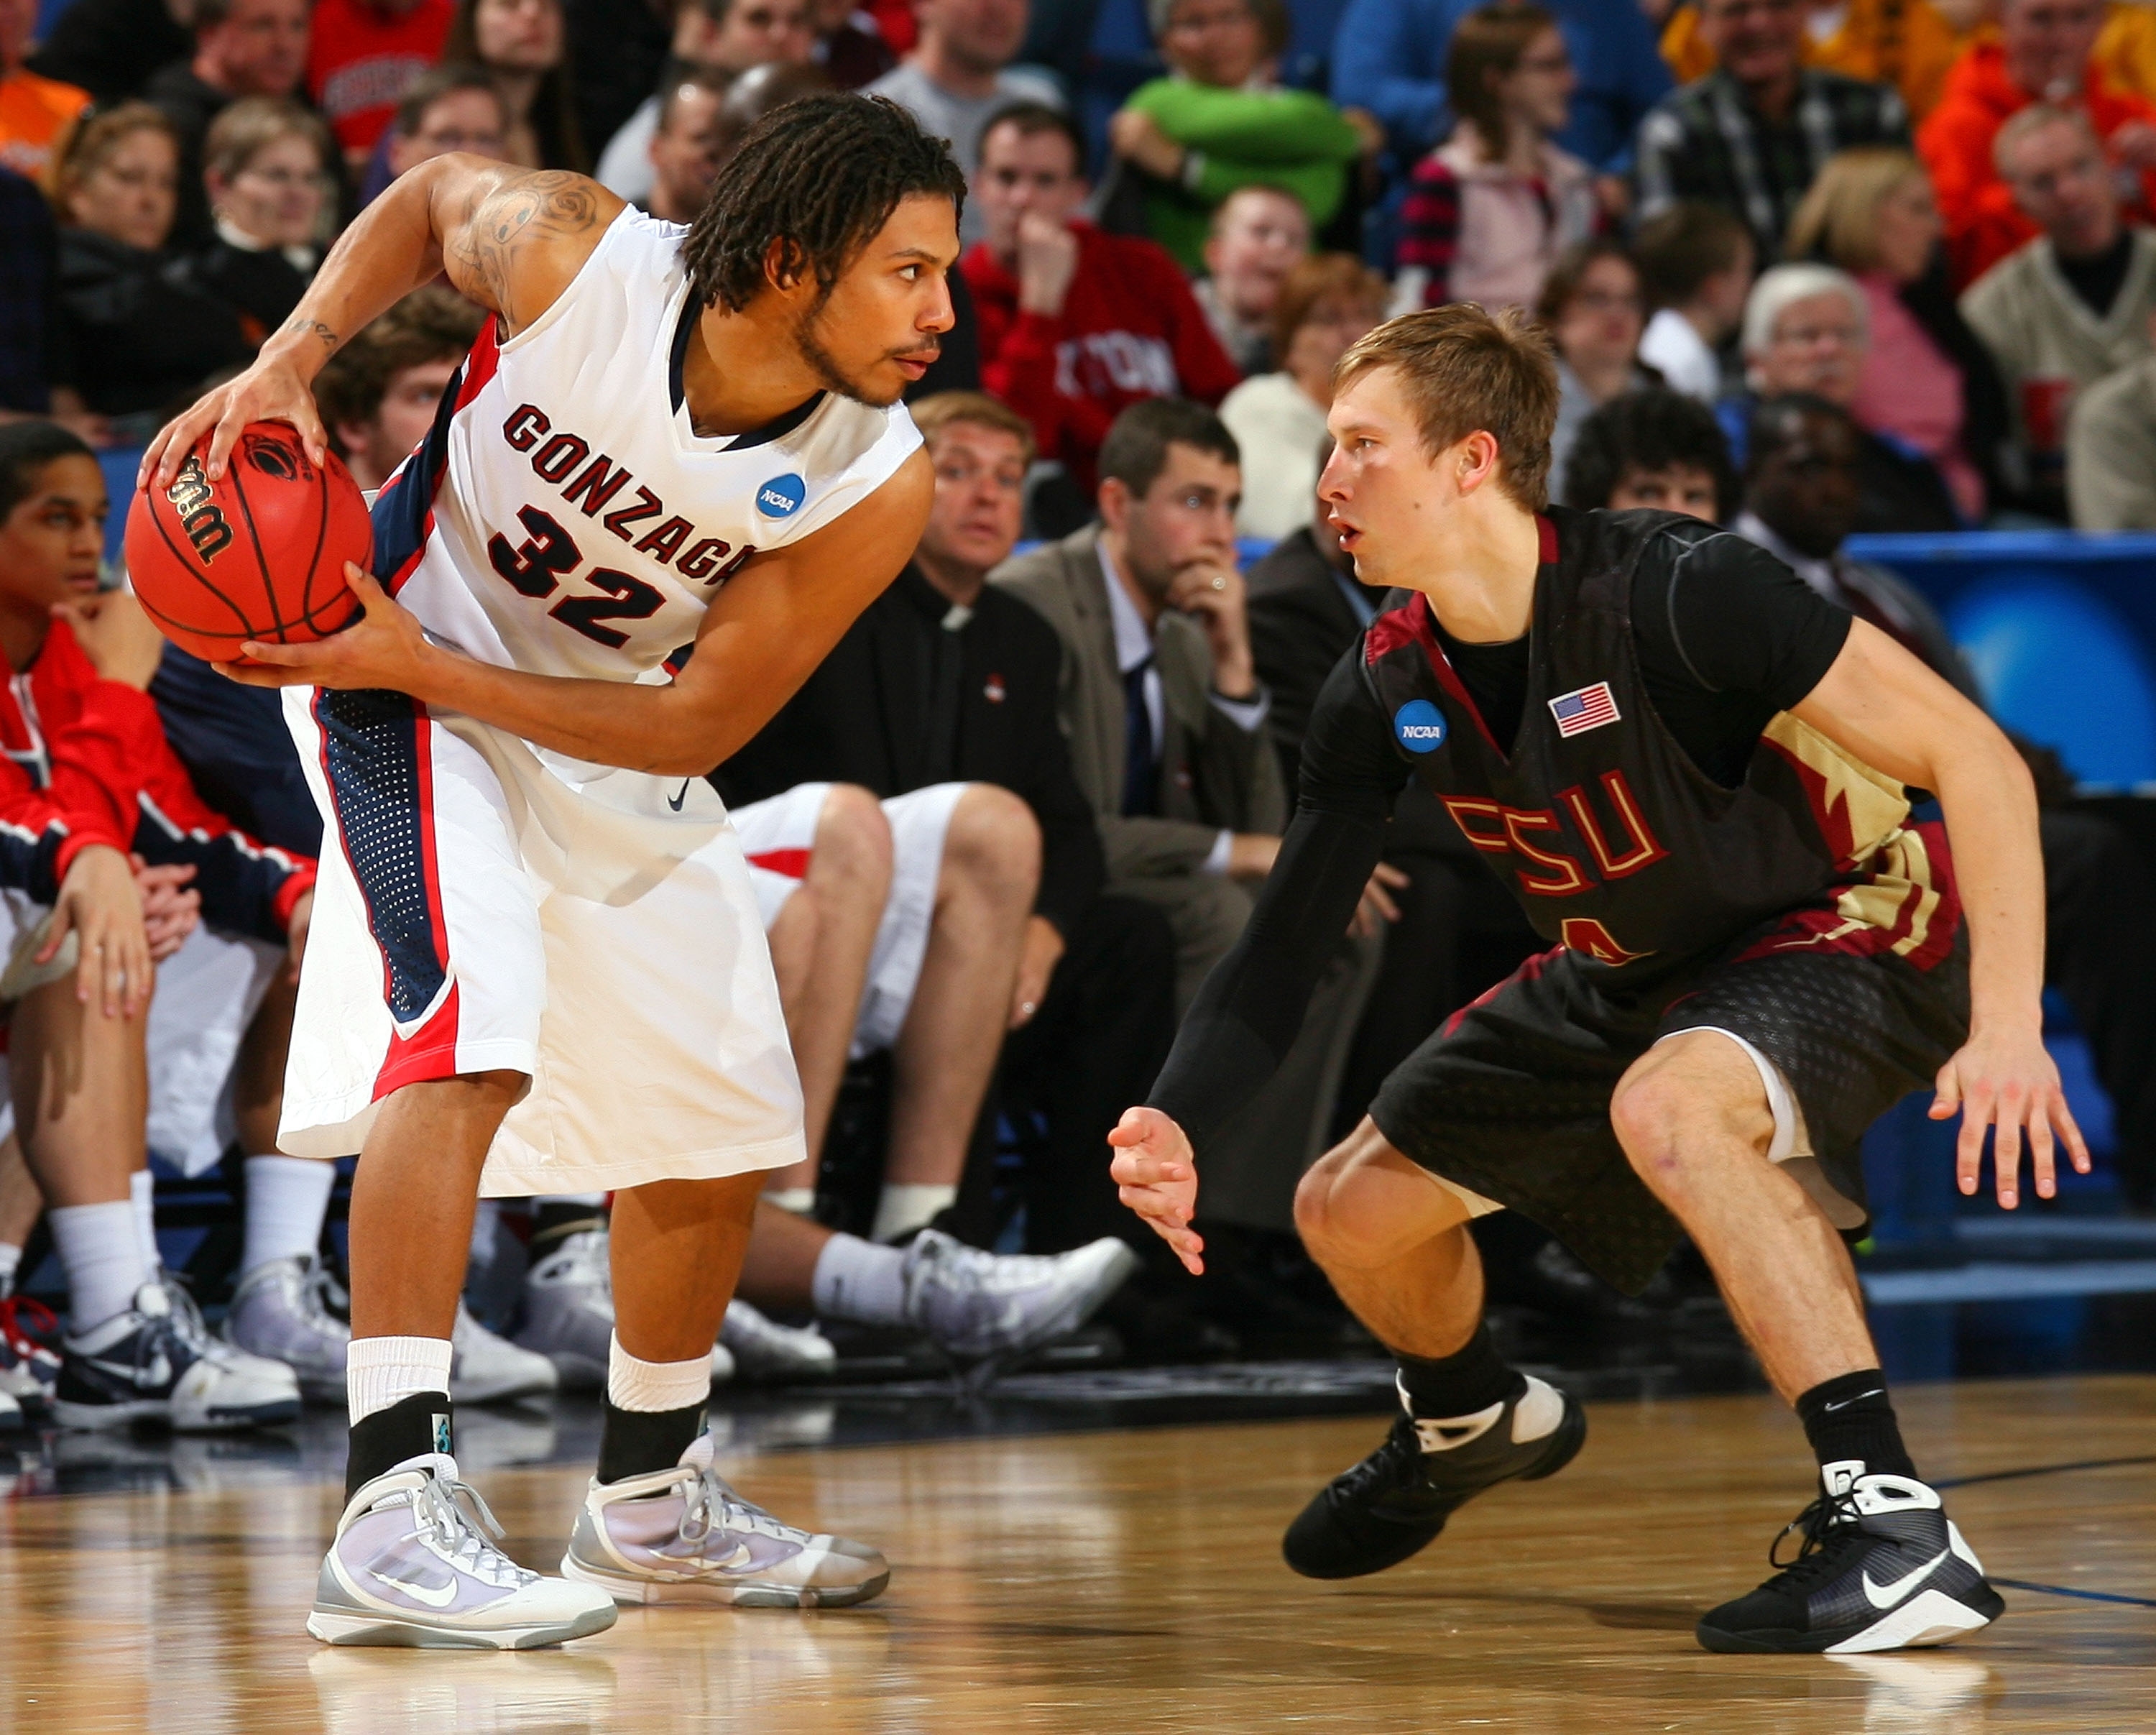 BUFFALO, NY - MARCH 19:  Steven Gray #32 of the Gonzaga Bulldogs handles the ball against Deividas Dulkys #4 of the Florida State Seminoles during the first round of the 2010 NCAA men's basketball tournament at HSBC Arena on March 19, 2010 in Buffalo, New